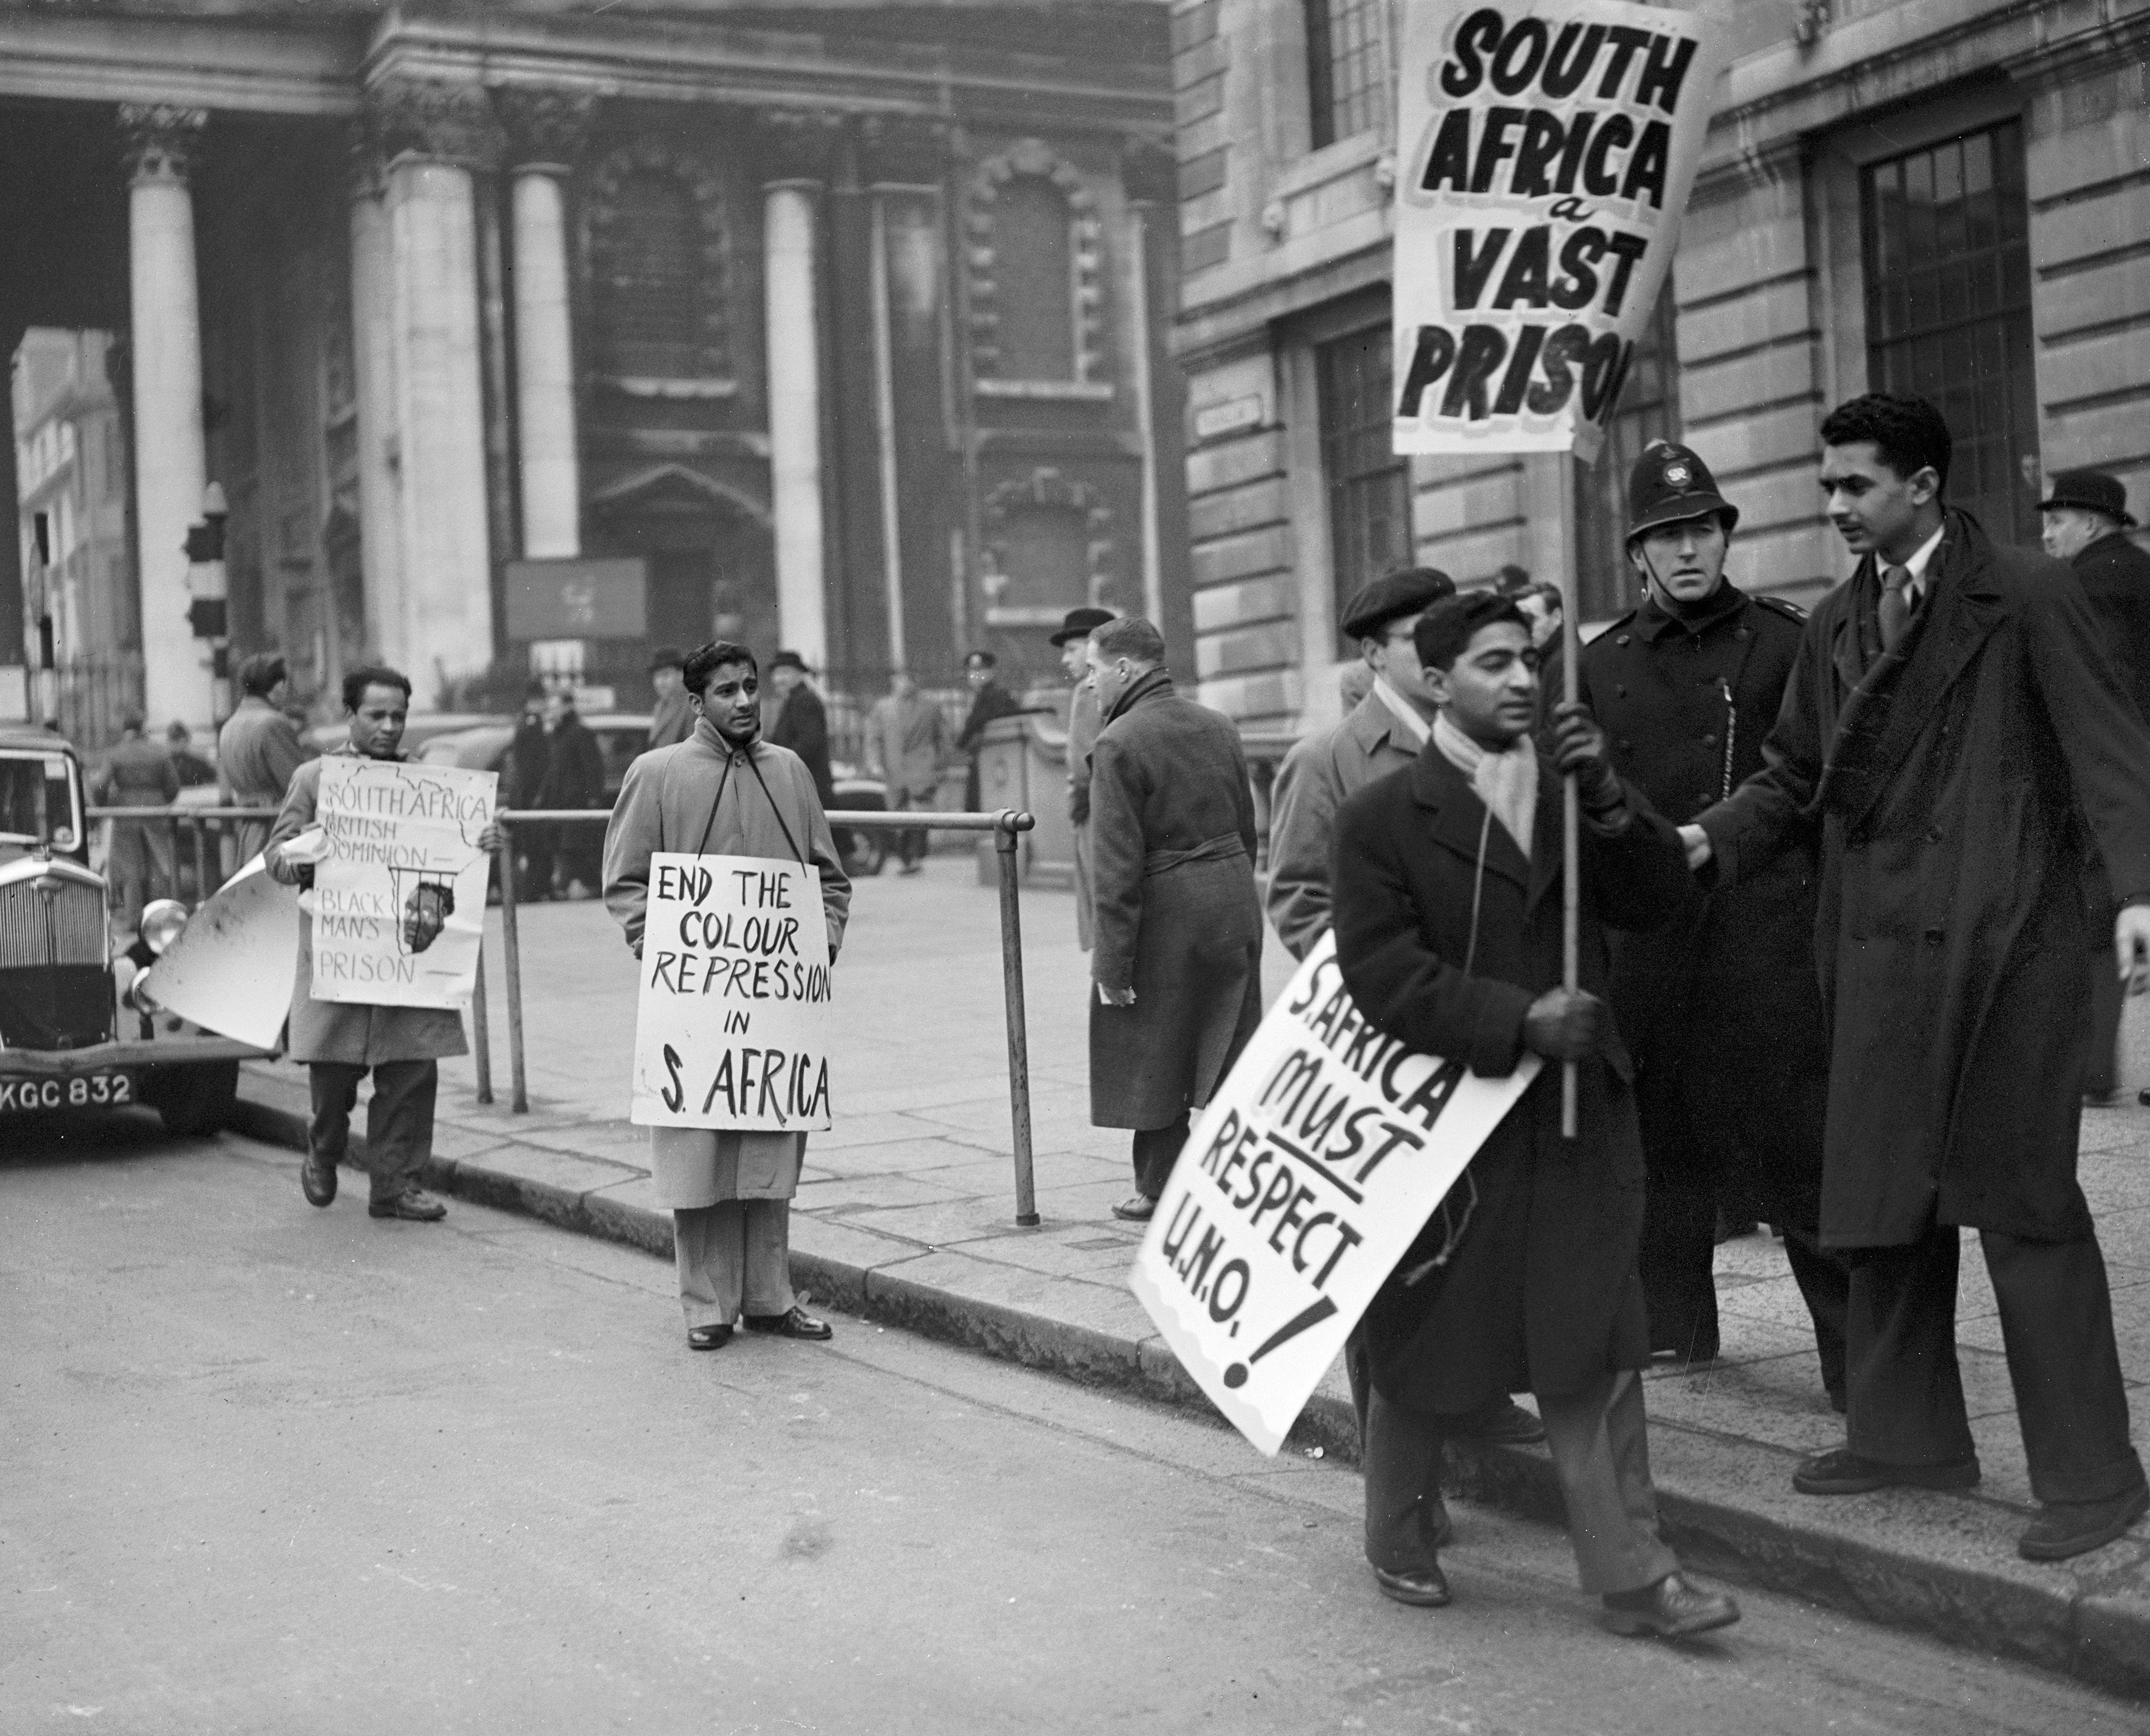 Policemen advise South Africa students, demonstrating in Trafalgar Square, to keep away from the precincts of South Africa House. 10th January 1951.